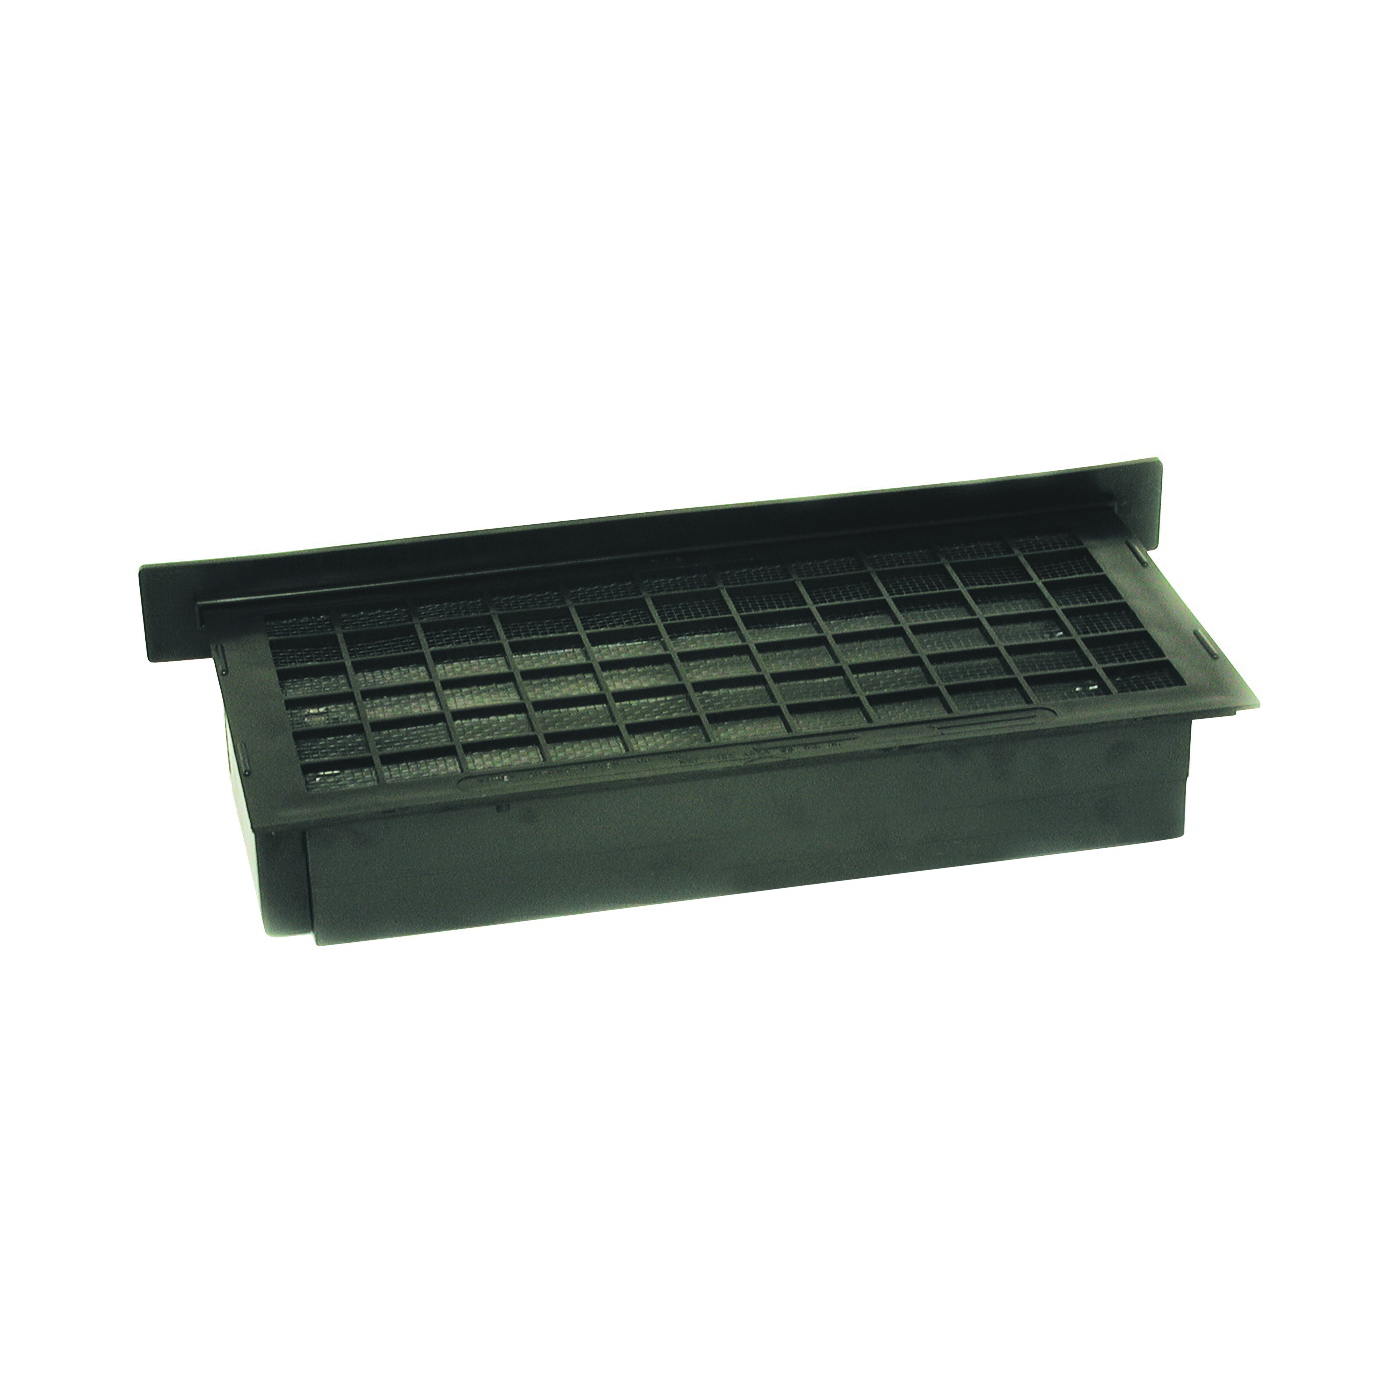 Picture of Bestvents A-ELBLACK Automatic Foundation Vent, 62 sq-in Net Free Ventilating Area, Mesh Grill, Thermoplastic